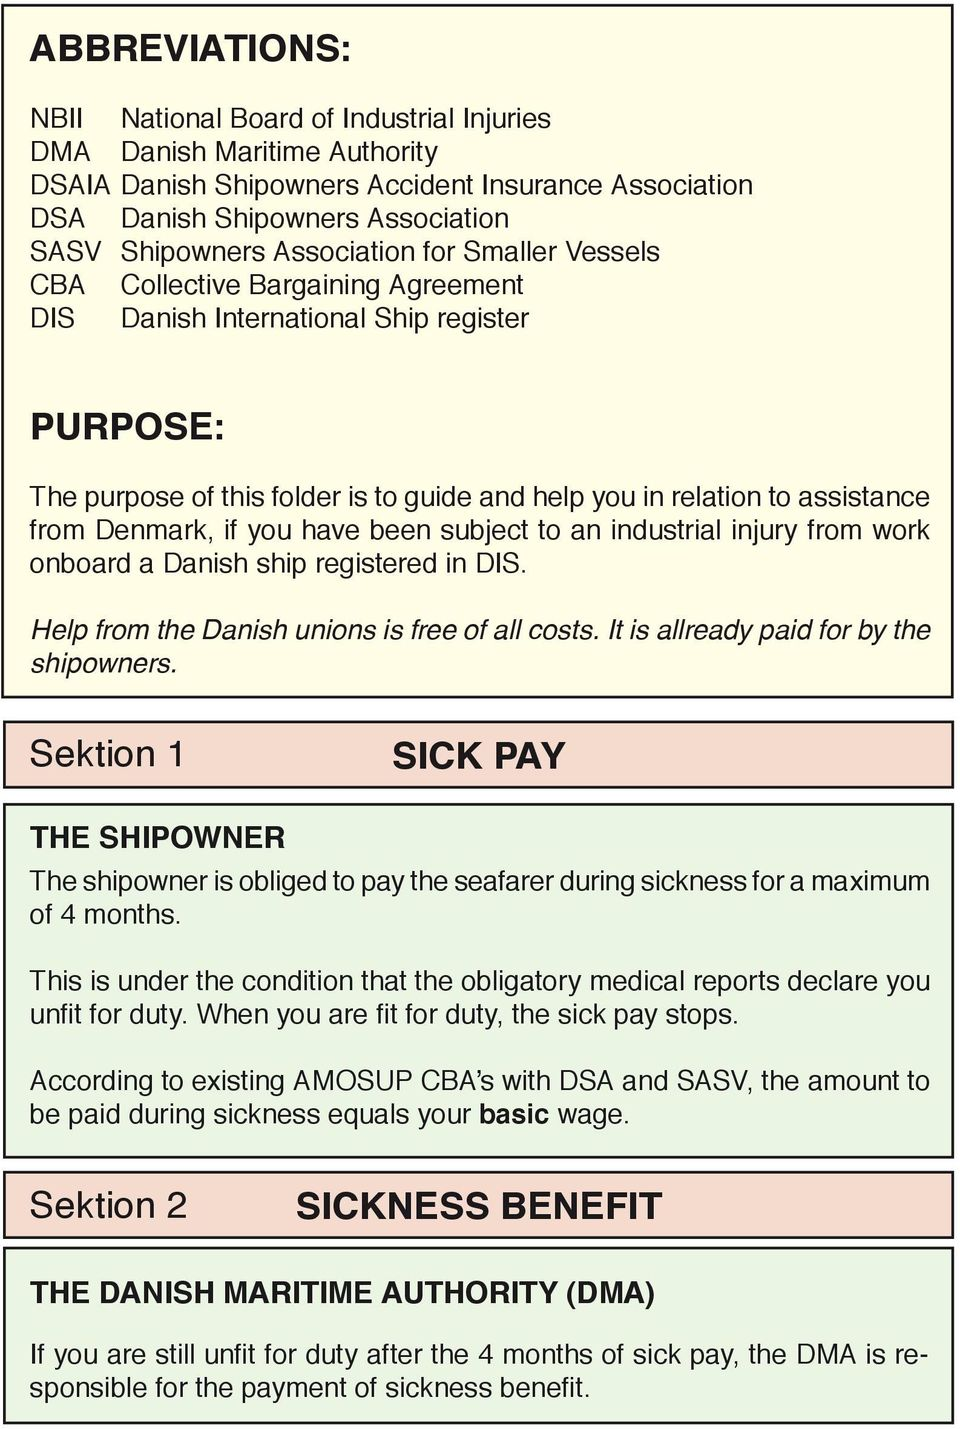 if you have been subject to an industrial injury from work onboard a Danish ship registered in DIS. Help from the Danish unions is free of all costs. It is allready paid for by the shipowners.